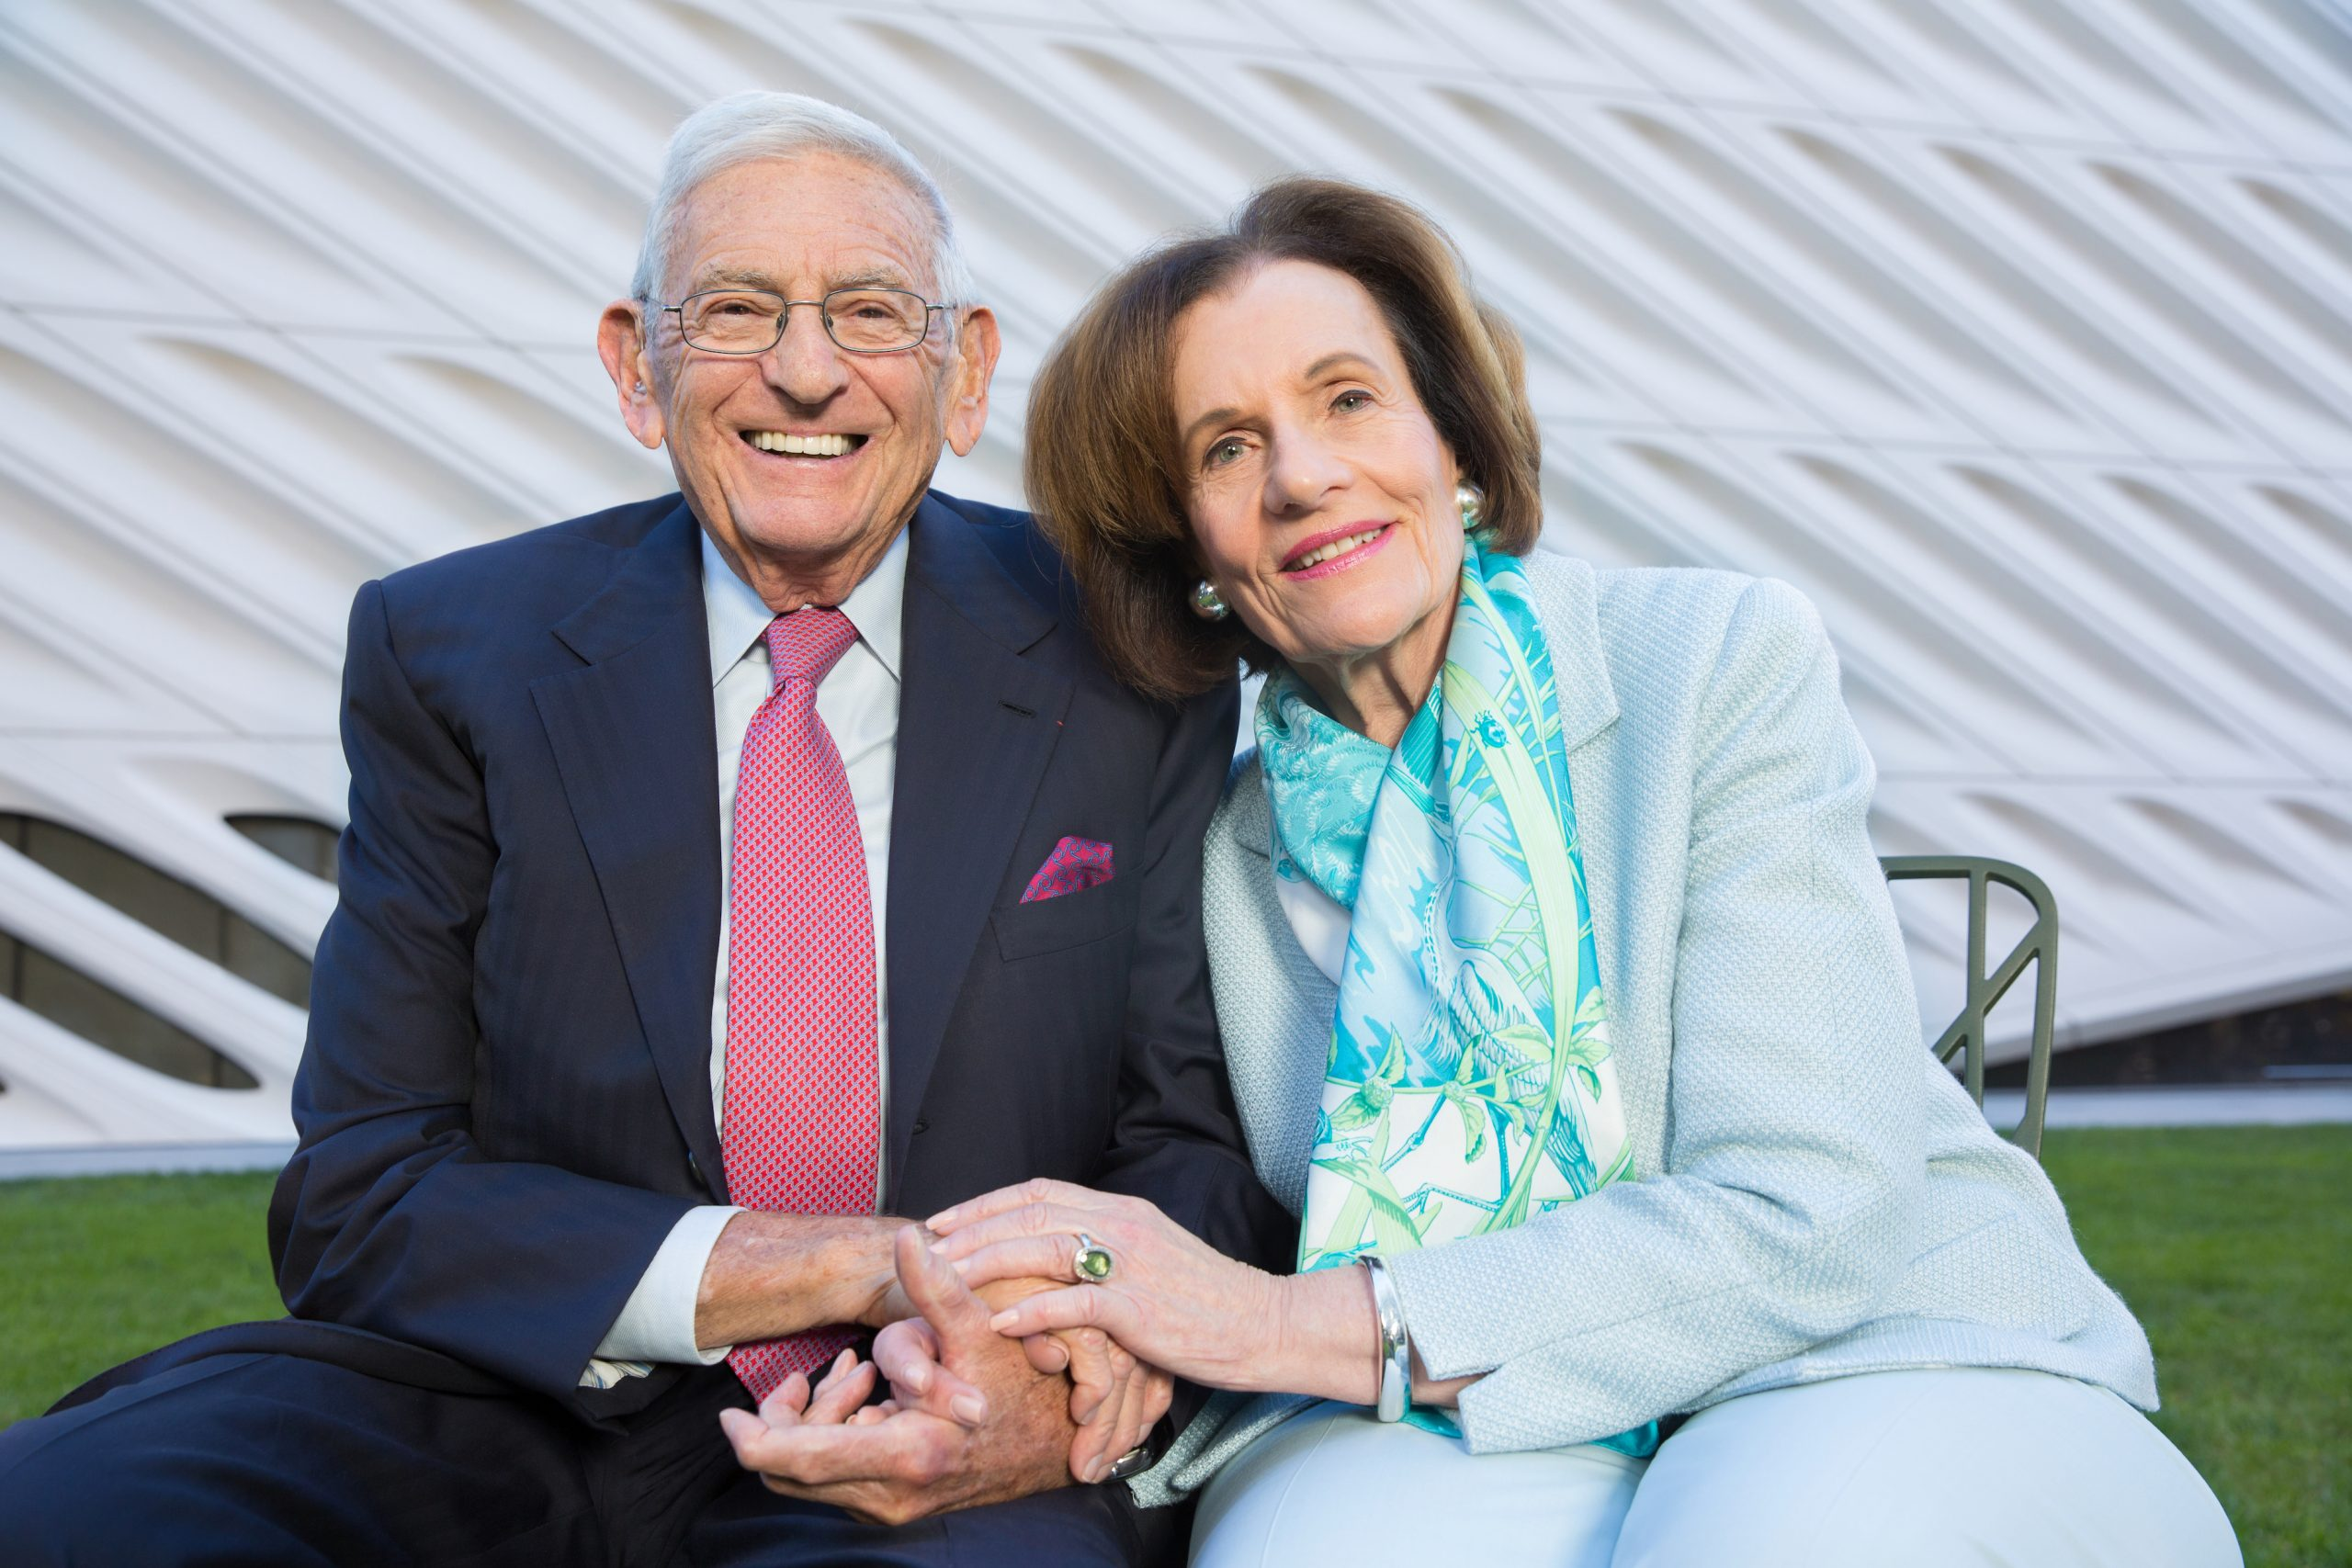 Eli Broad, the Proudly 'Unreasonable' Art Collector Who Changed the Cultural Landscape of Los Angeles, Dies at 87 | Artnet News